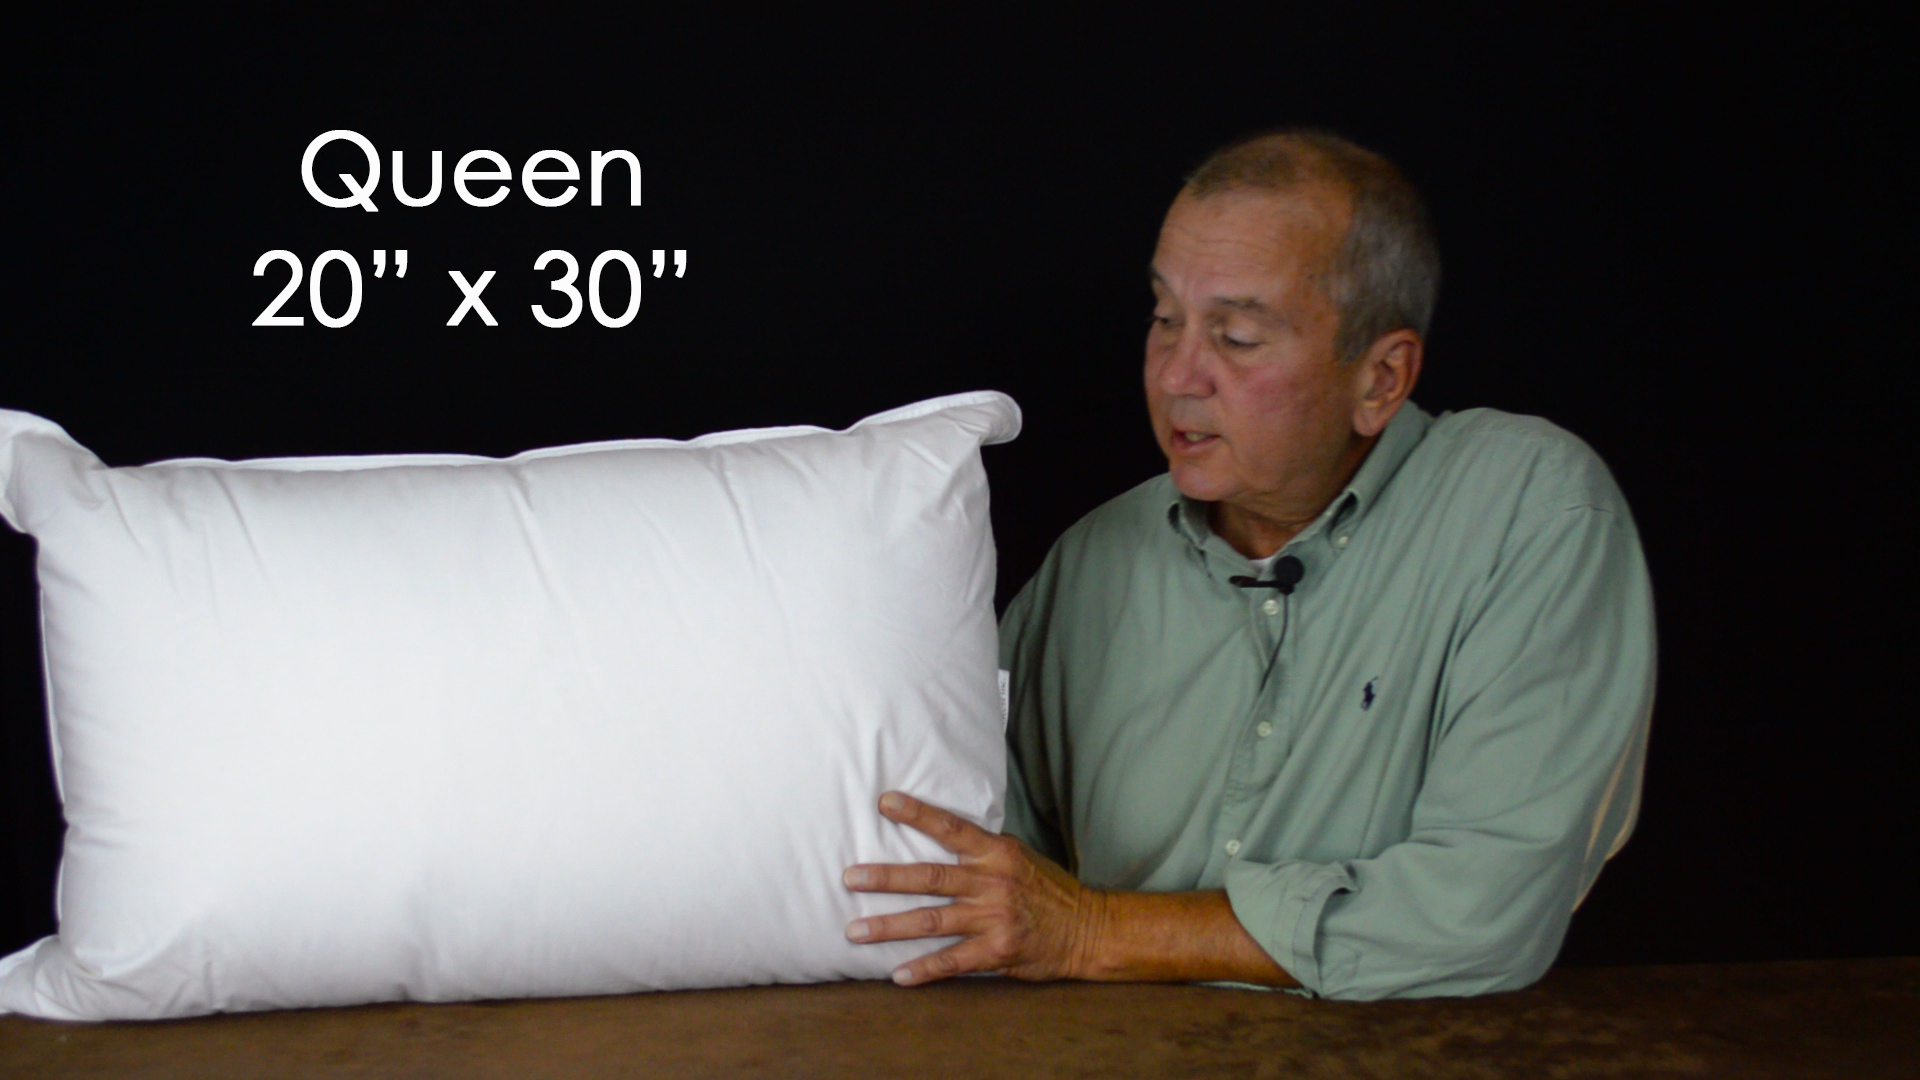 Queen size pillows are 20